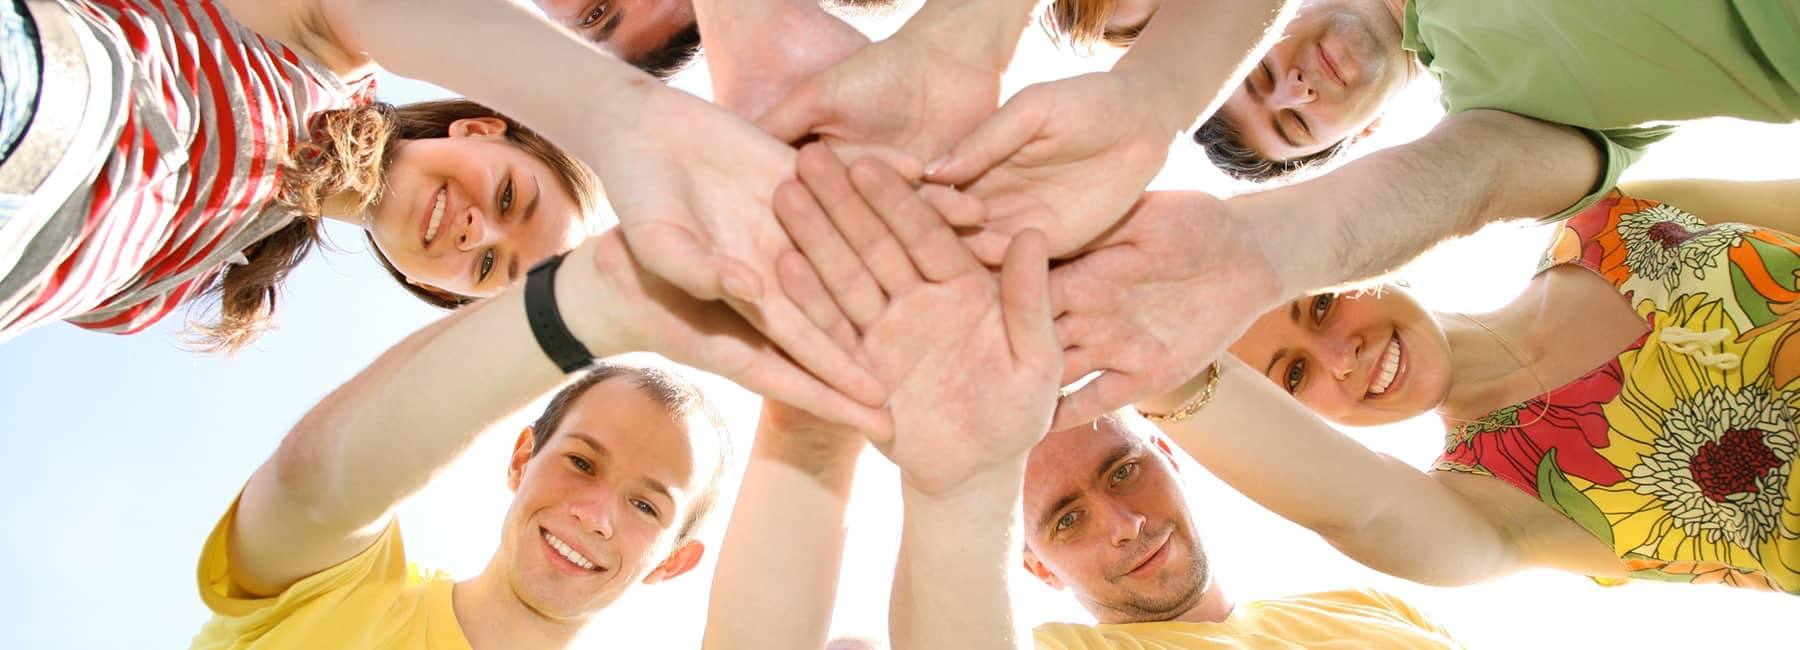 young people place their hands together in a circle